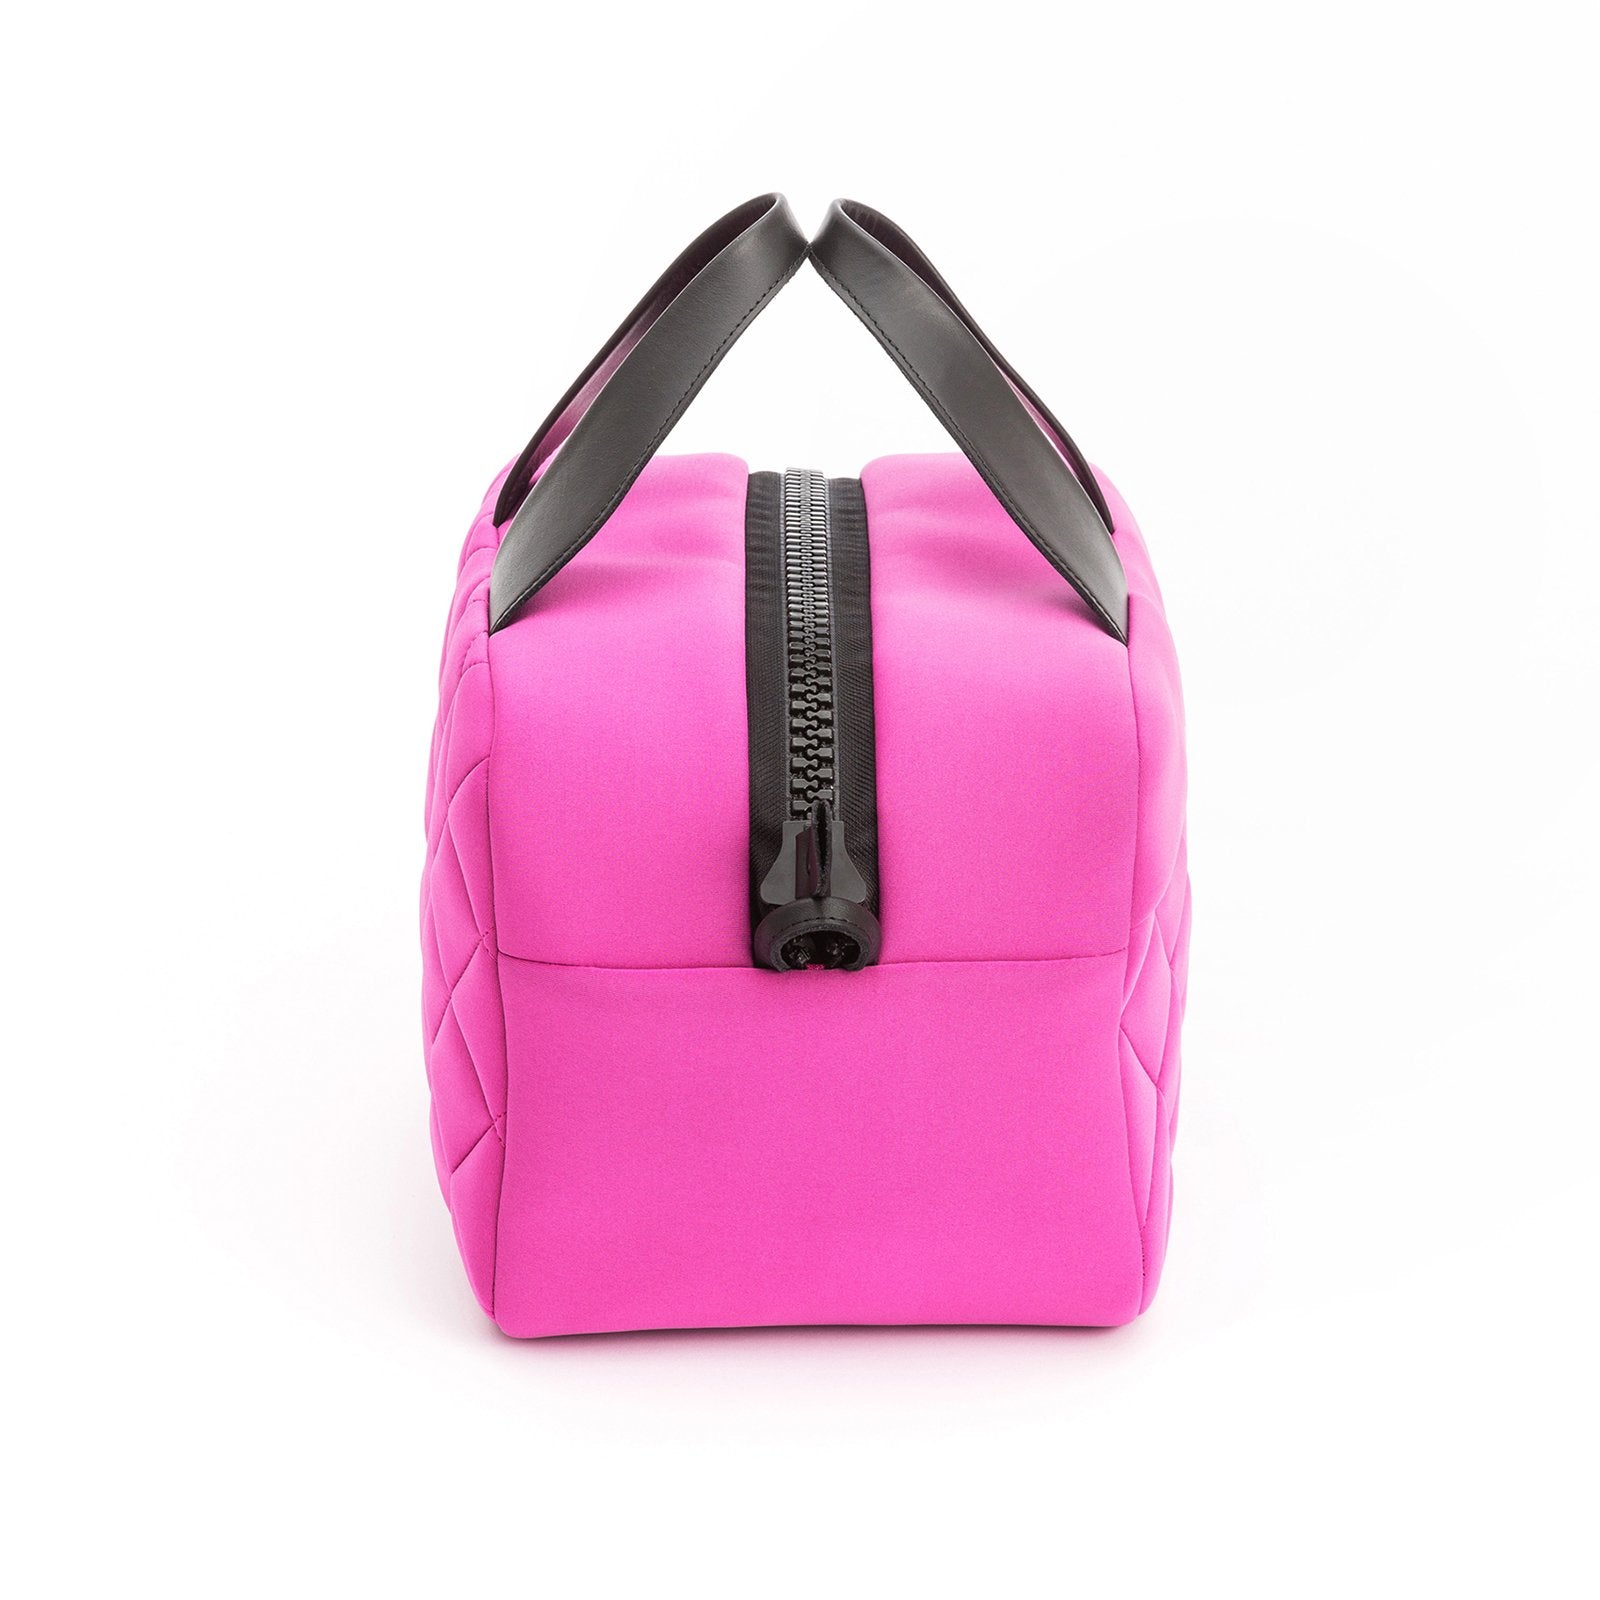 NEOPRENE BAG 34 - PINK PEACOCK